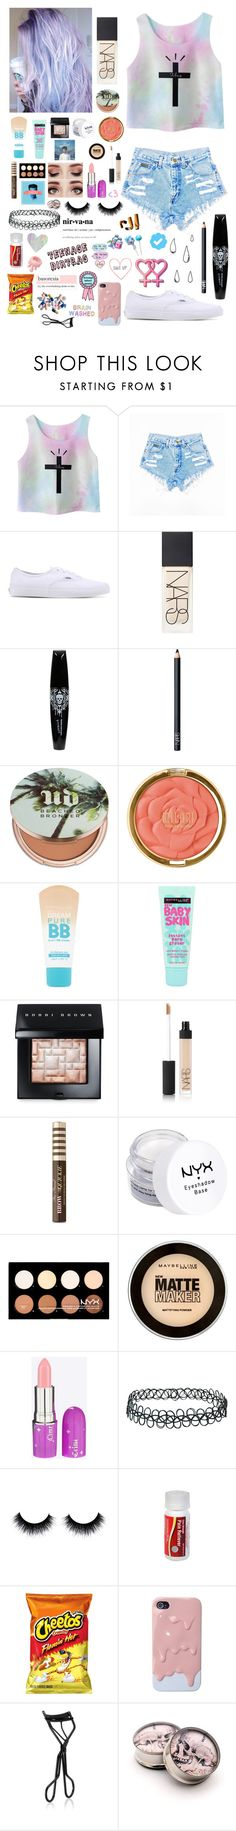 """""""Don't wanna be an American idiot..."""" by emo-kyleigh ❤ liked on Polyvore featuring Chicnova Fashion, Vans, NARS Cosmetics, Urban Decay, Milani, Maybelline, Bobbi Brown Cosmetics, Too Faced Cosmetics, NYX and Lime Crime"""